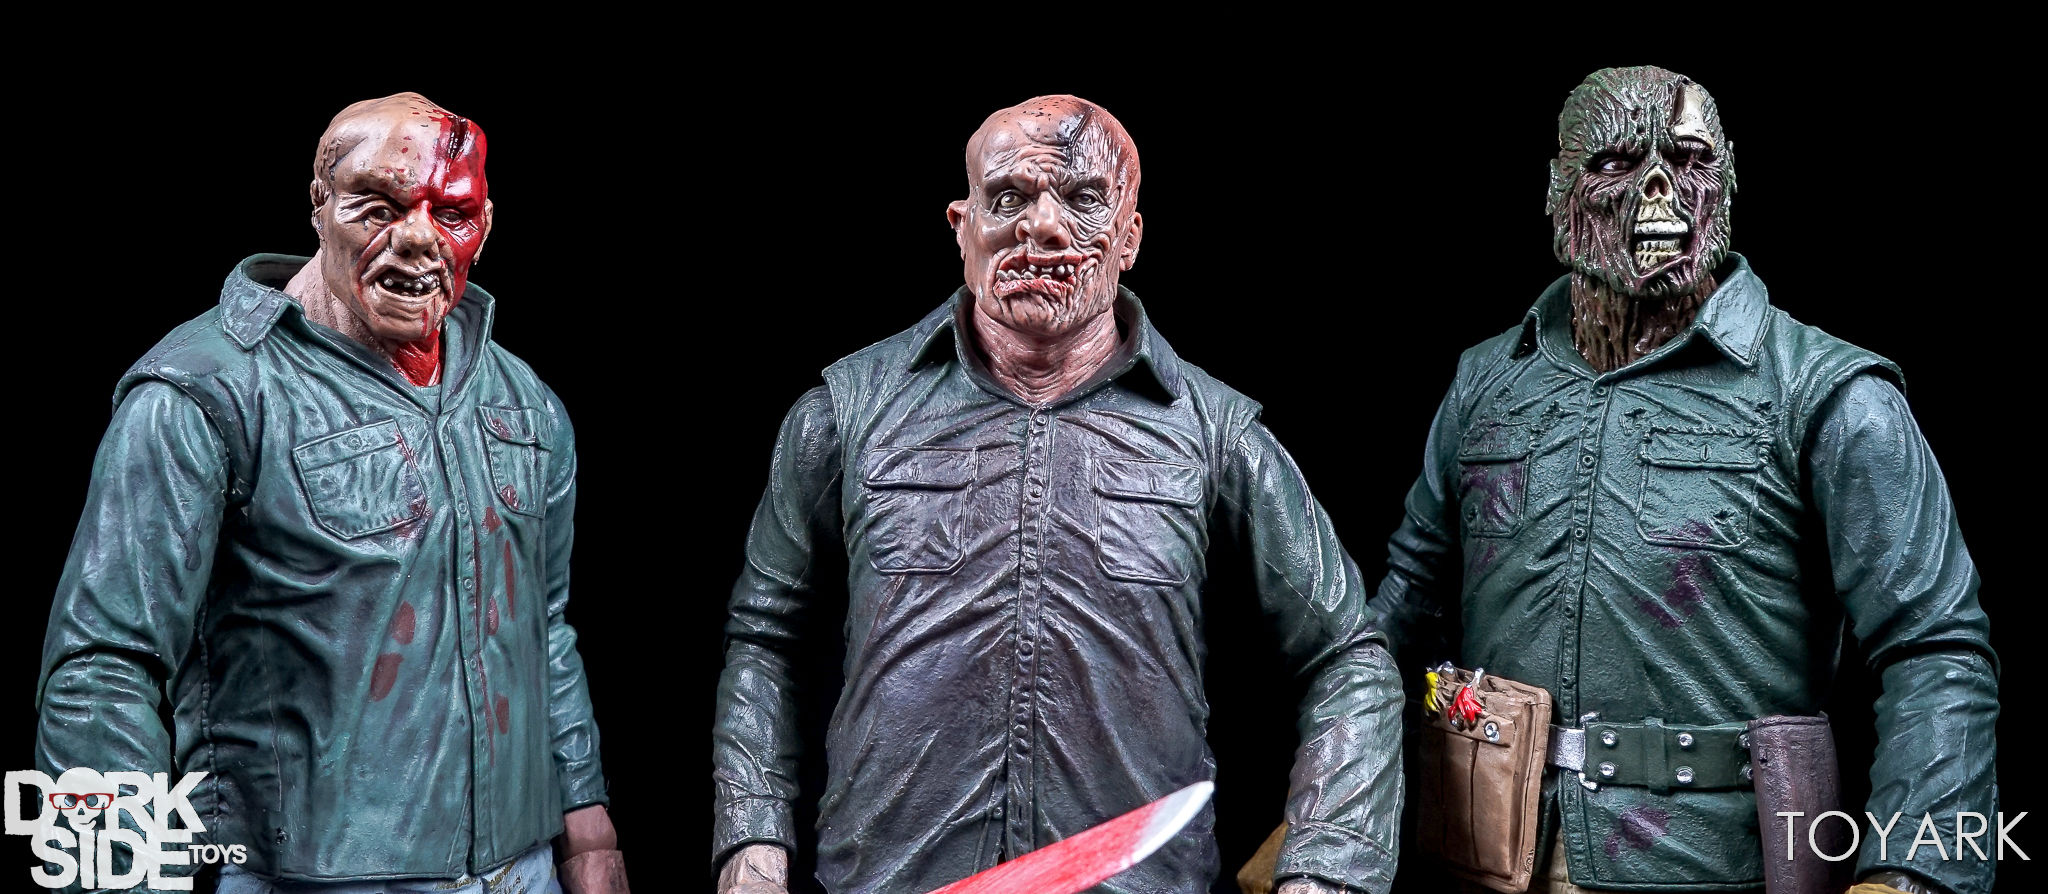 http://news.toyark.com/wp-content/uploads/sites/4/2017/06/Jason-Voorhees-Final-Chapter-Ultimate-045.jpg